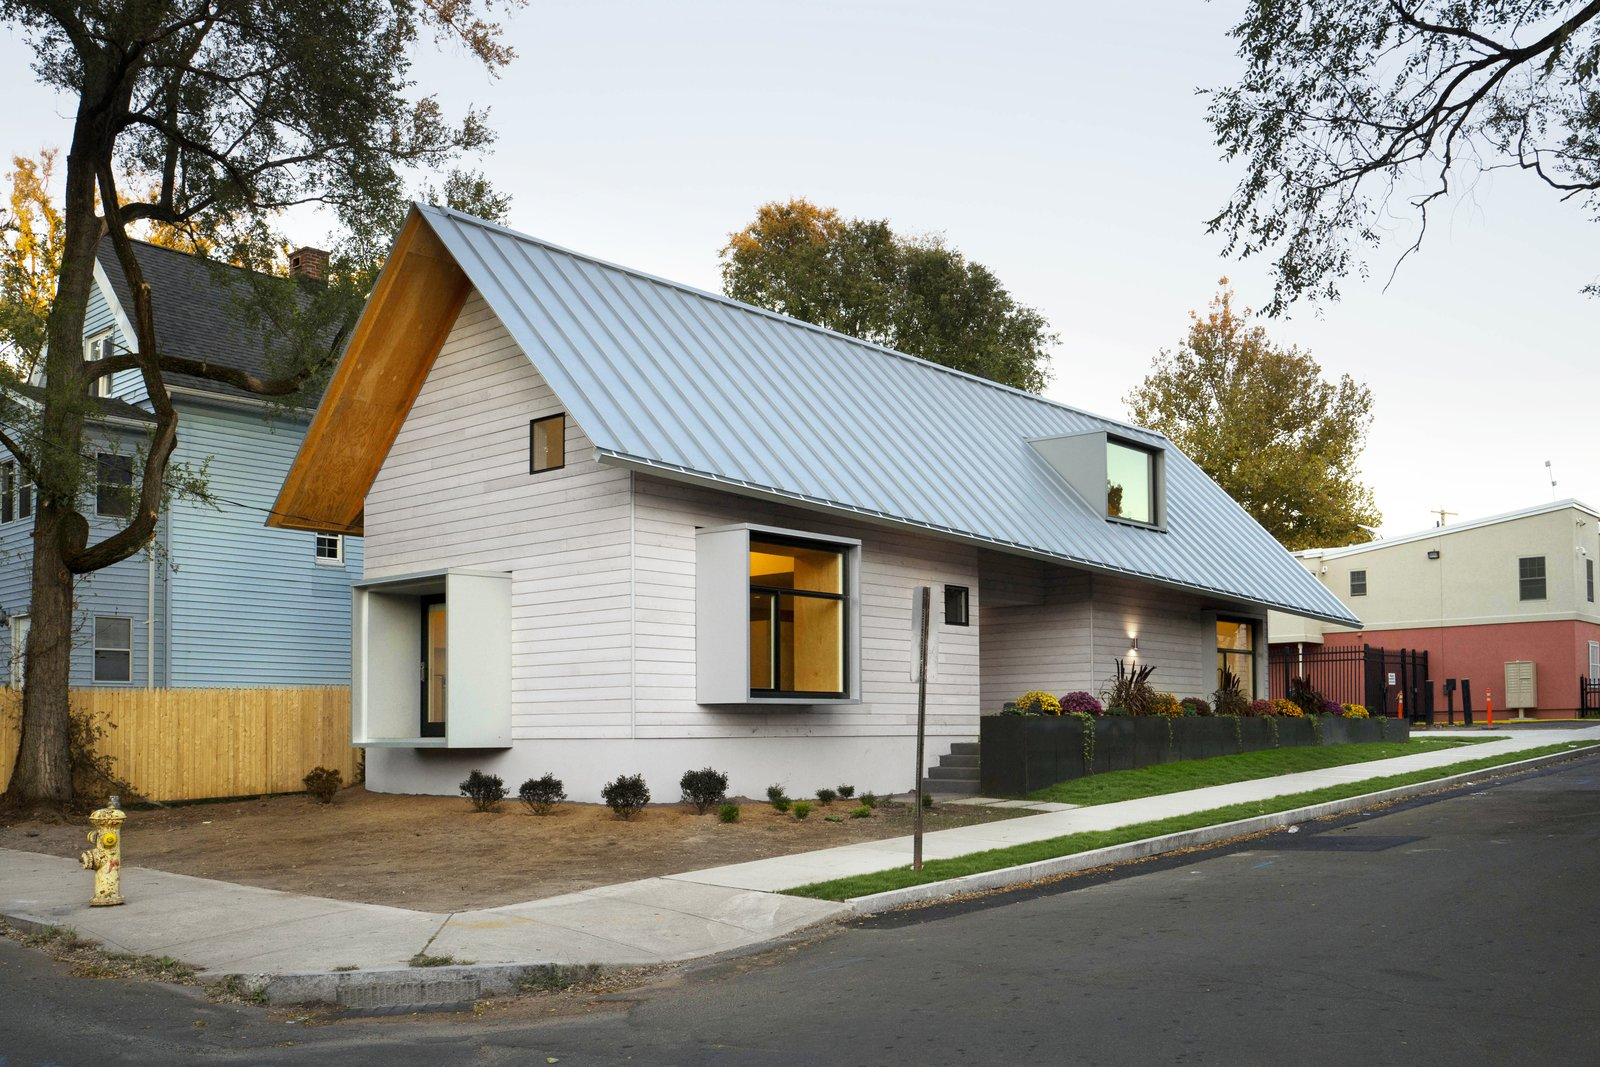 Exterior, Metal Roof Material, House Building Type, Wood Siding Material,  And Shed